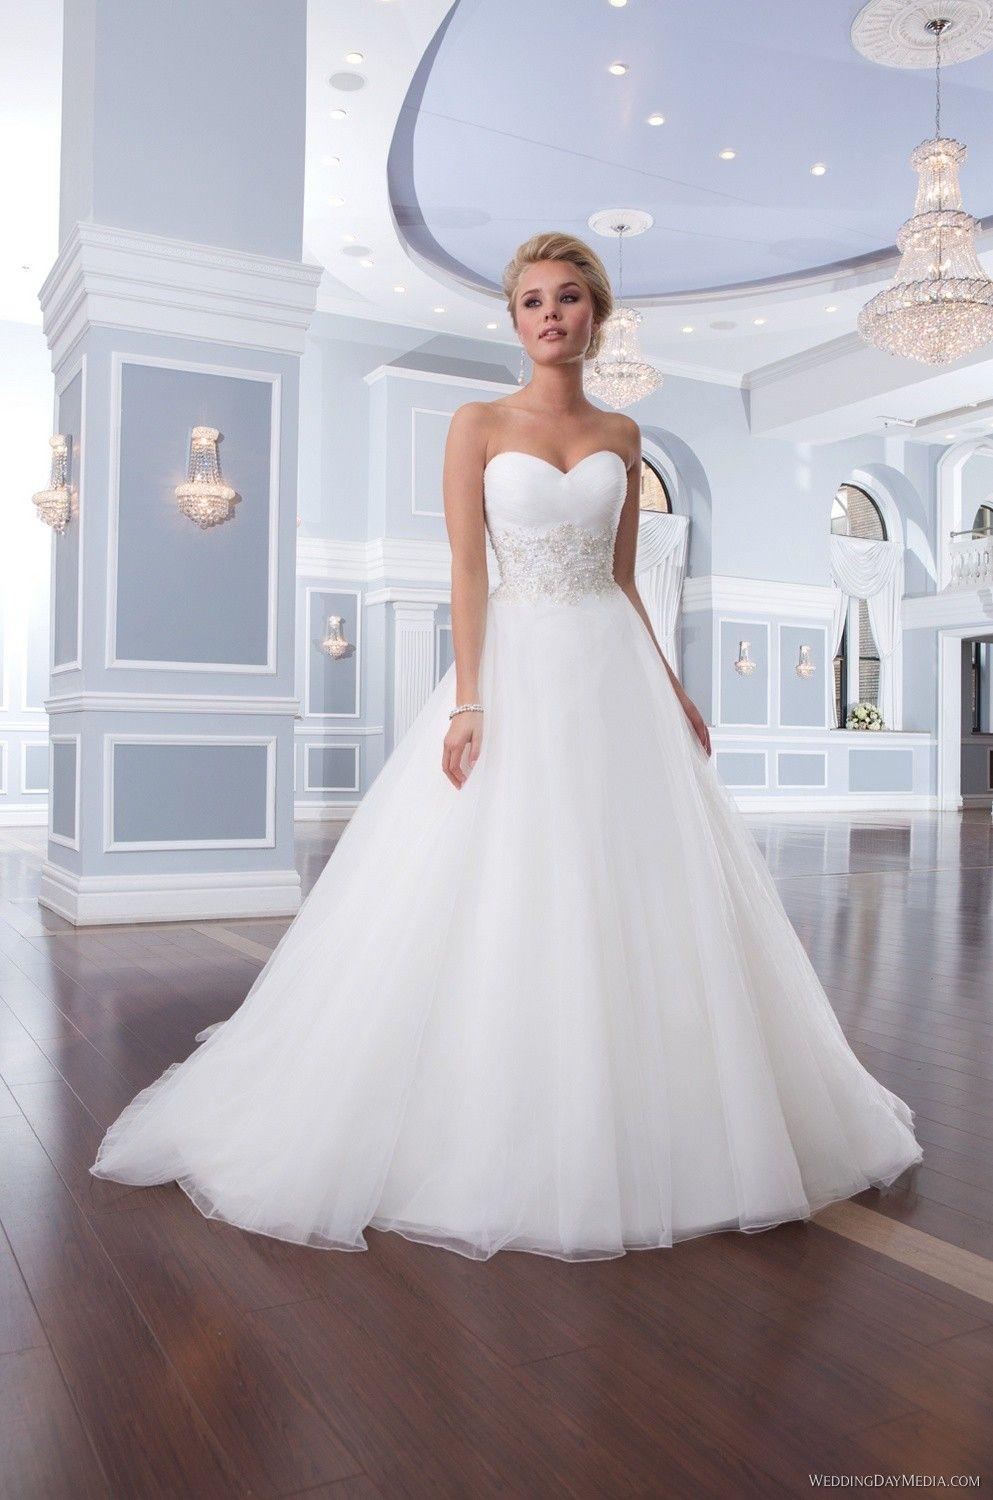 Lilly Grace Lw Confetti And Lace Lillian West Wedding Dress Ball Gowns Wedding Gown Wedding Dress